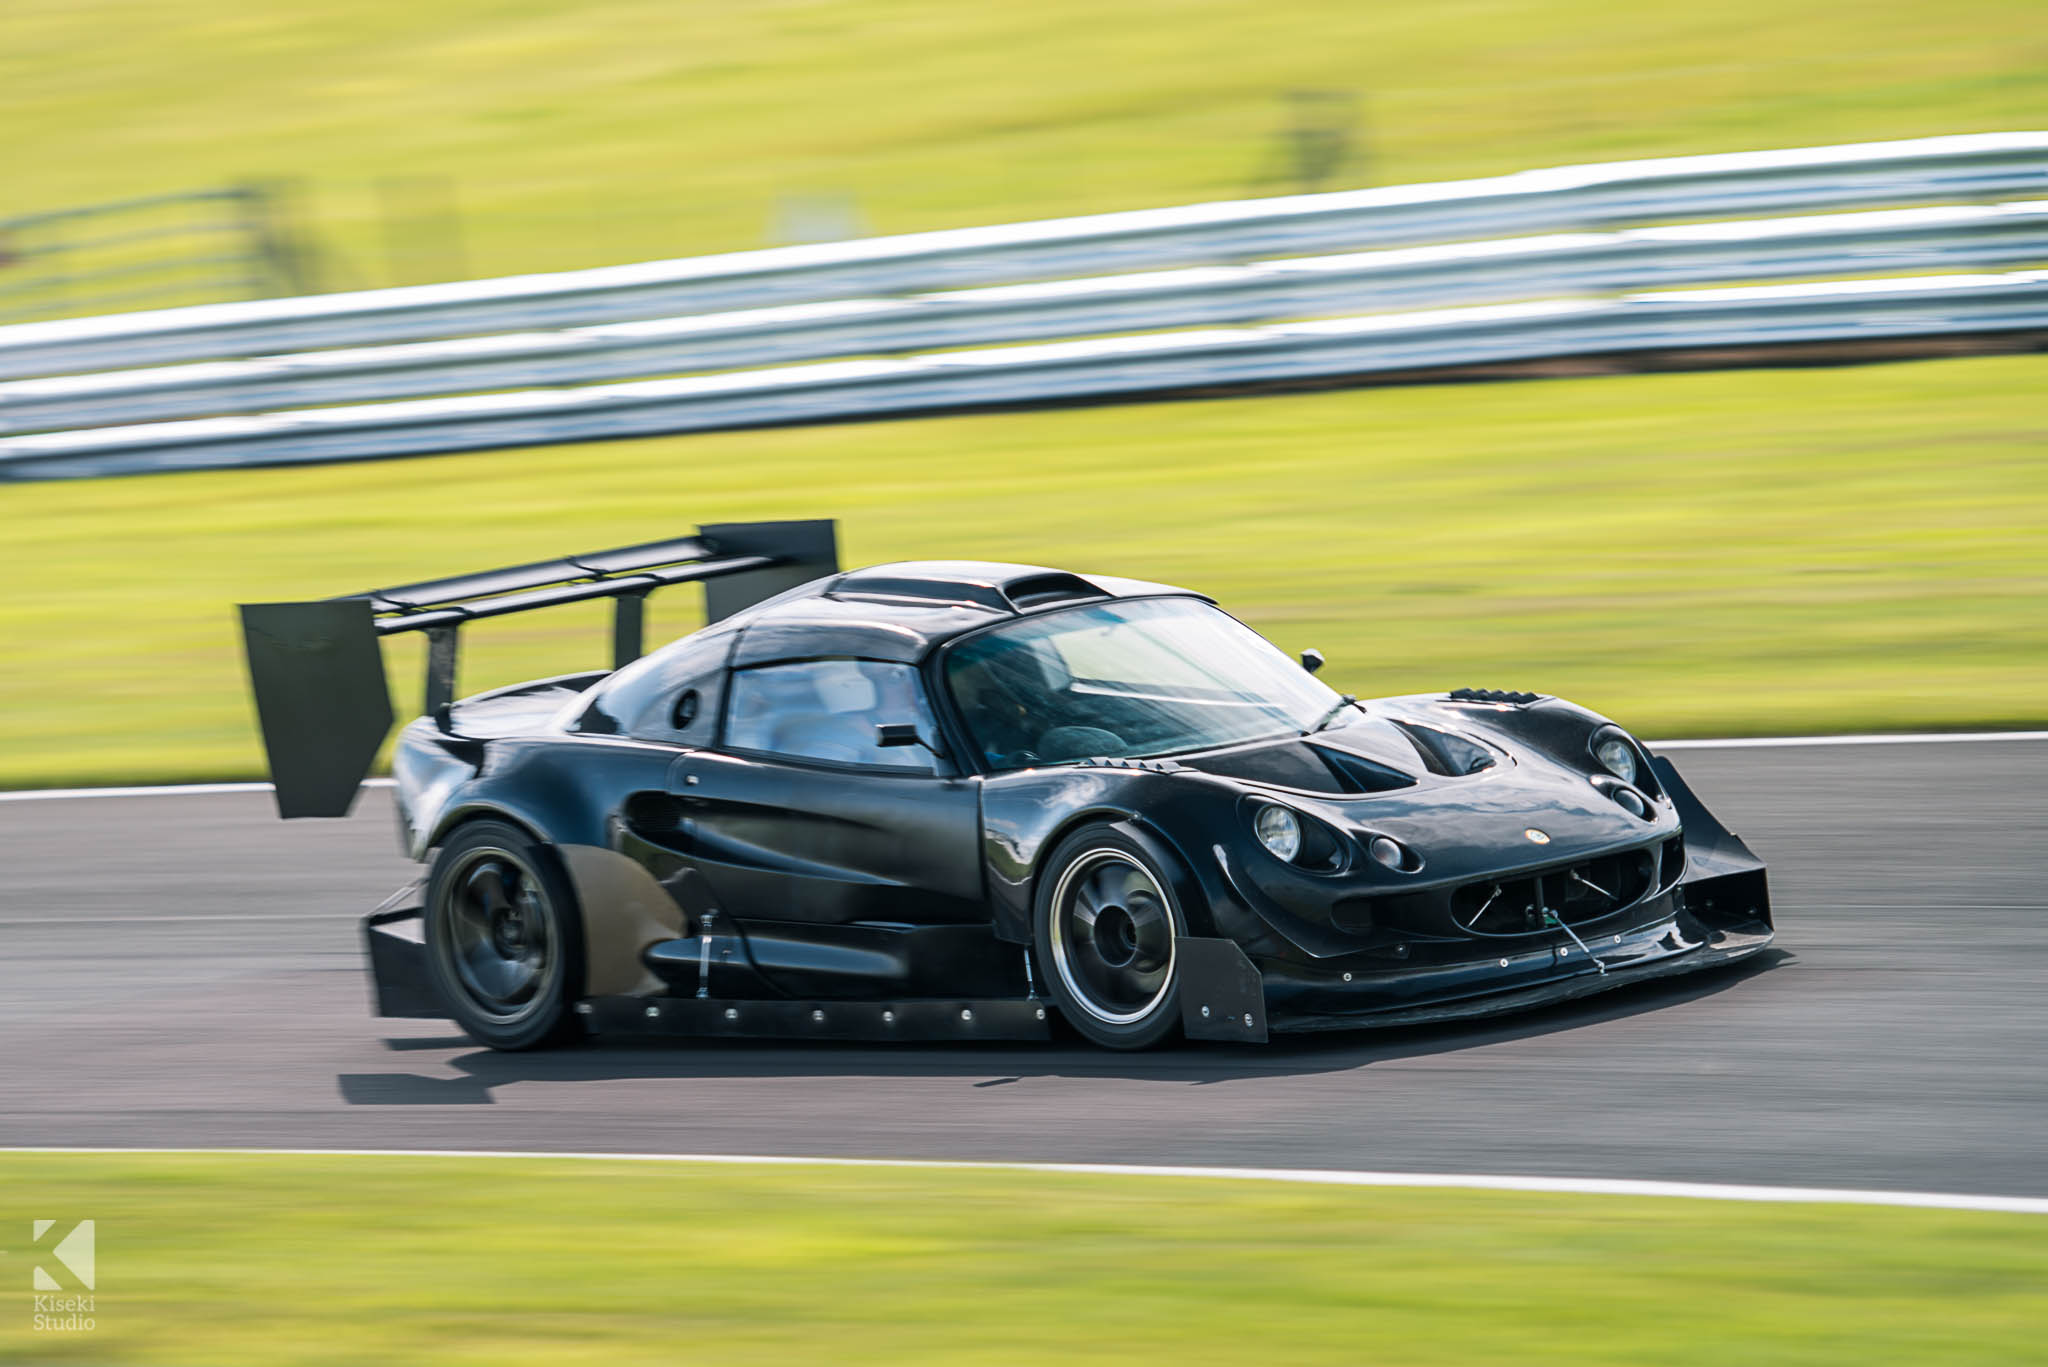 Lotus Exige Time Attack Carbon Fibre Aero